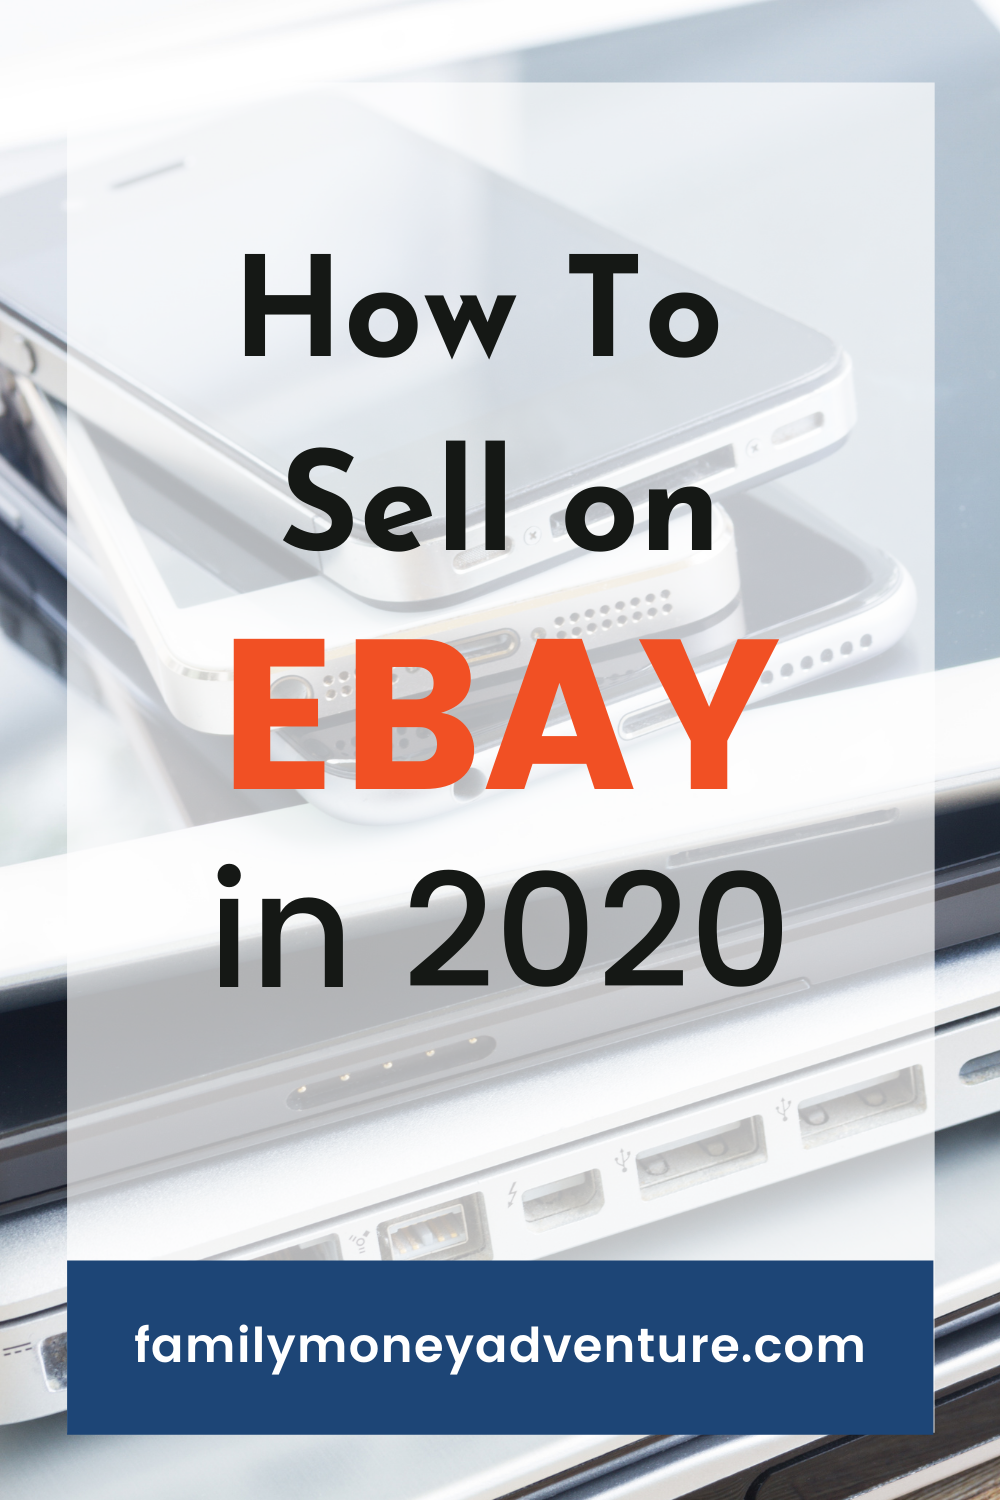 How To Sell on eBay in 2021